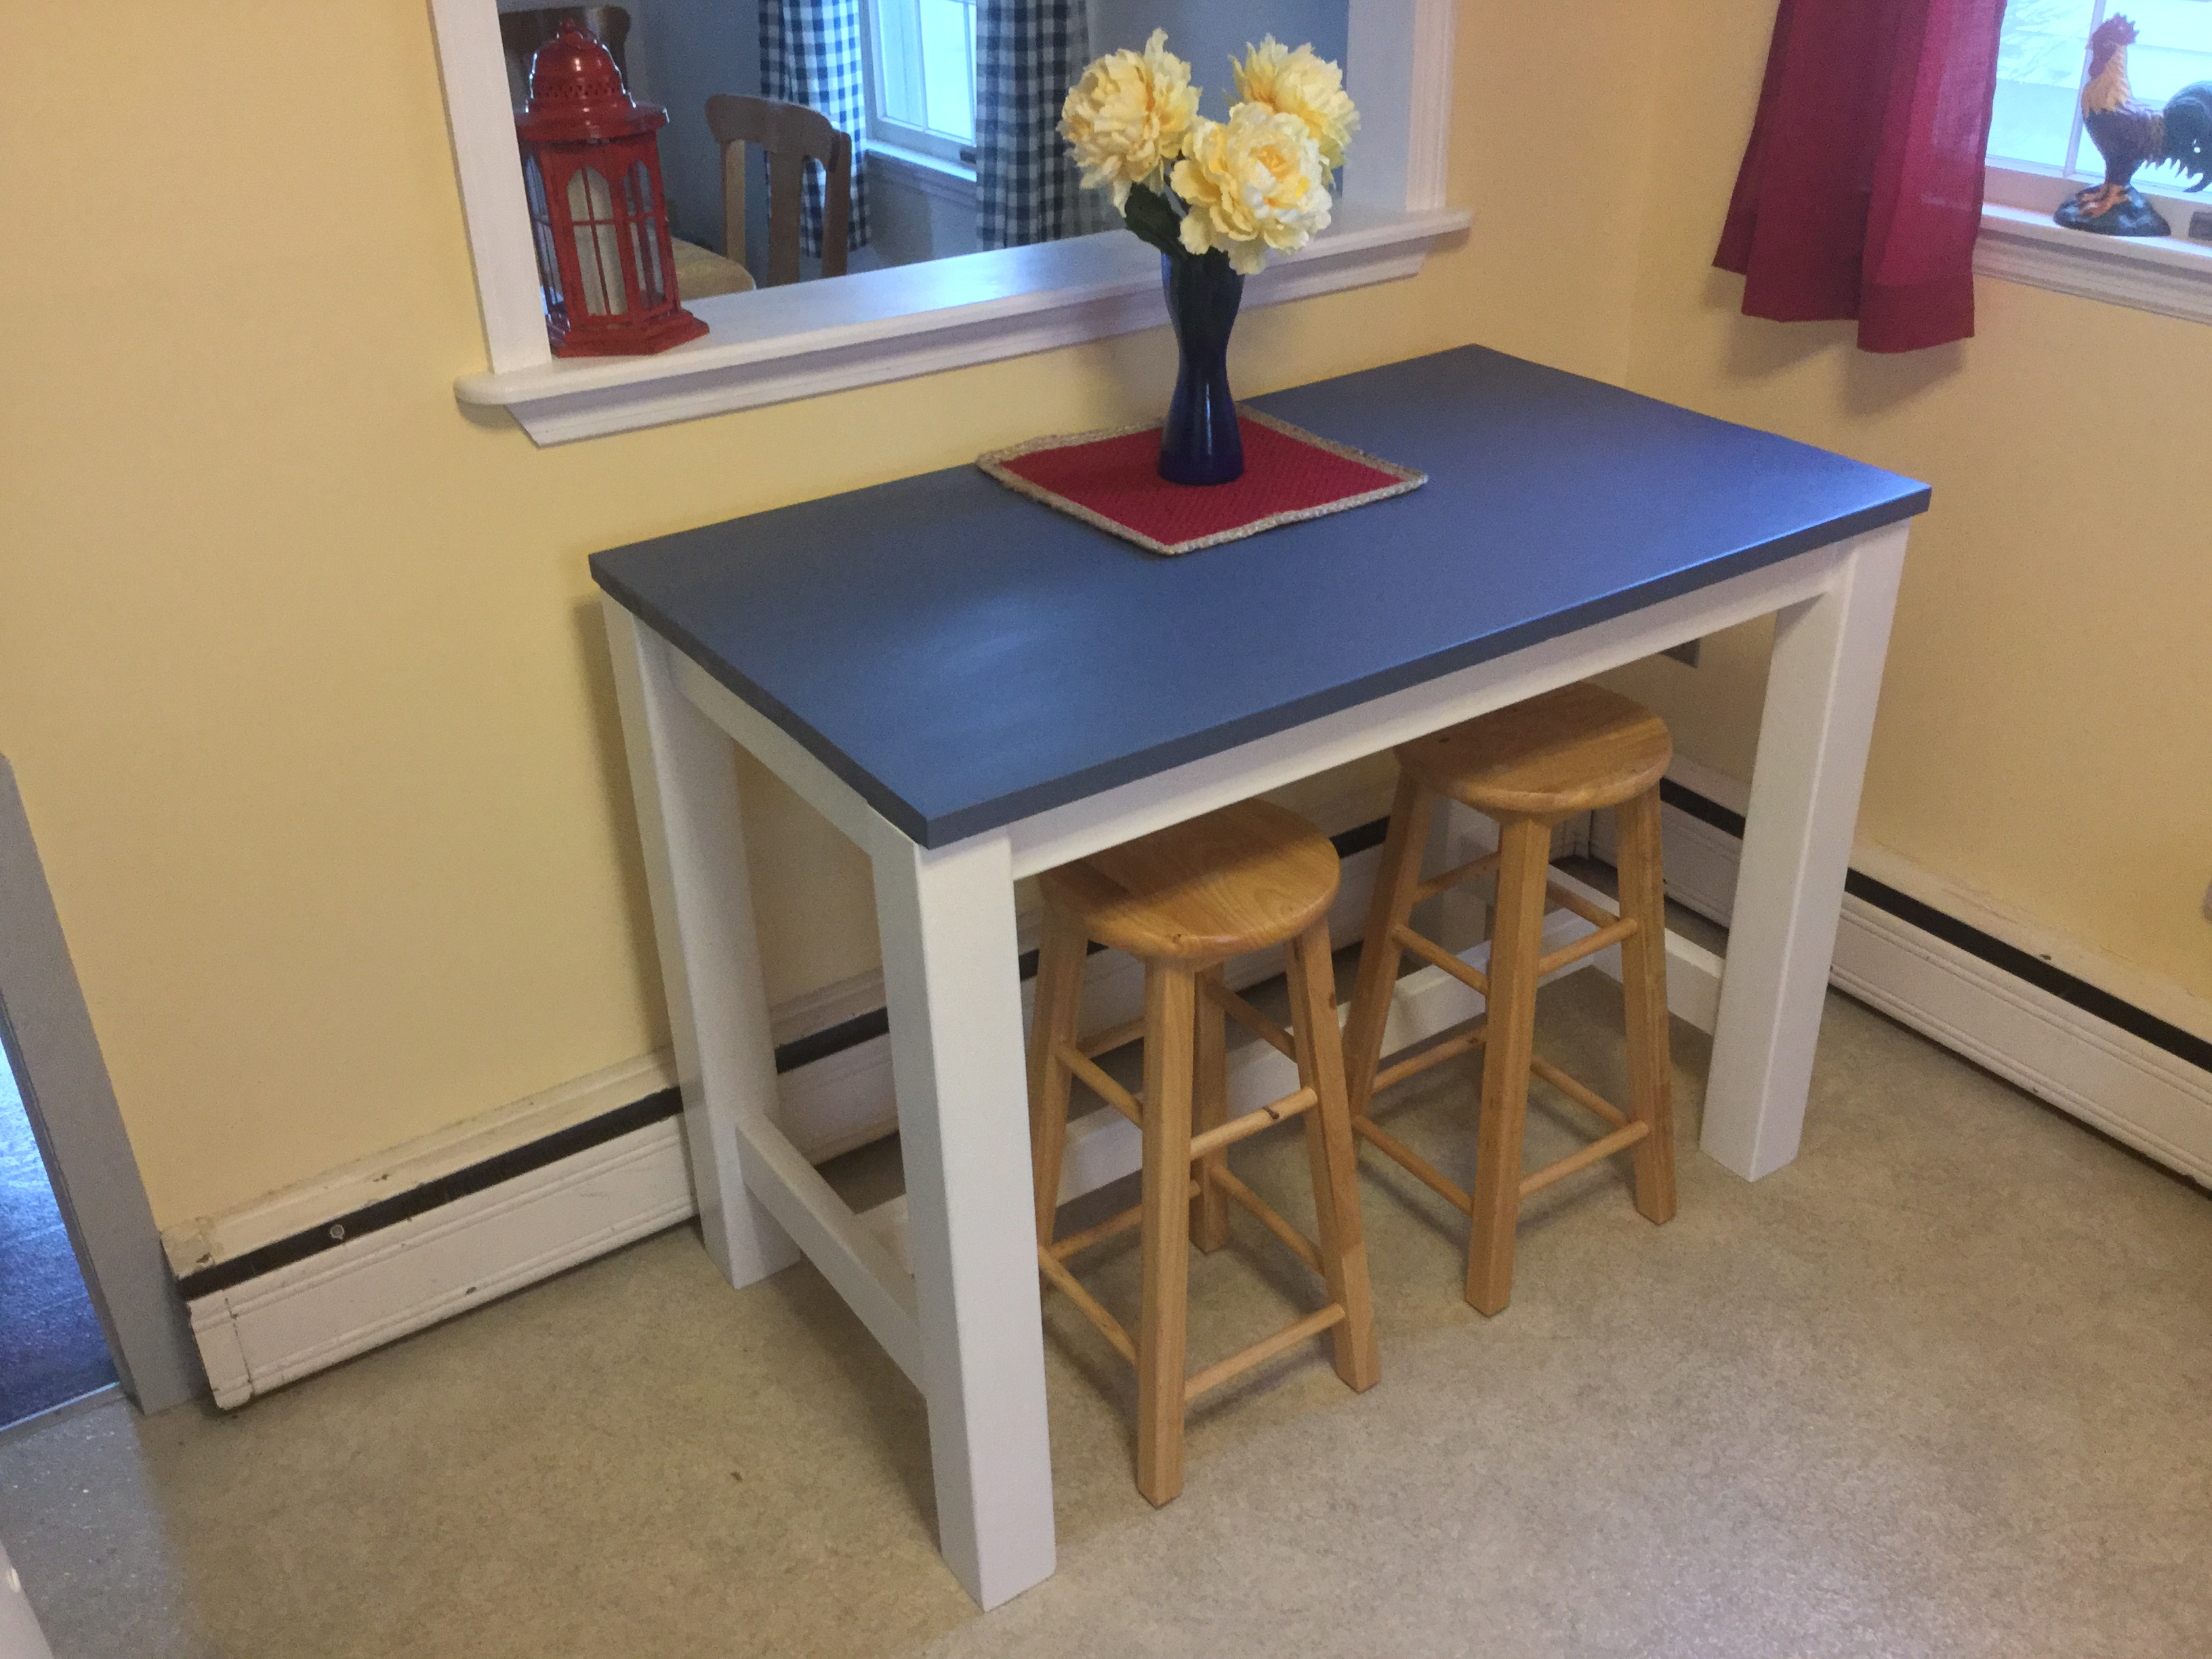 Ana White Kitchen Counter Height Table Diy Projects